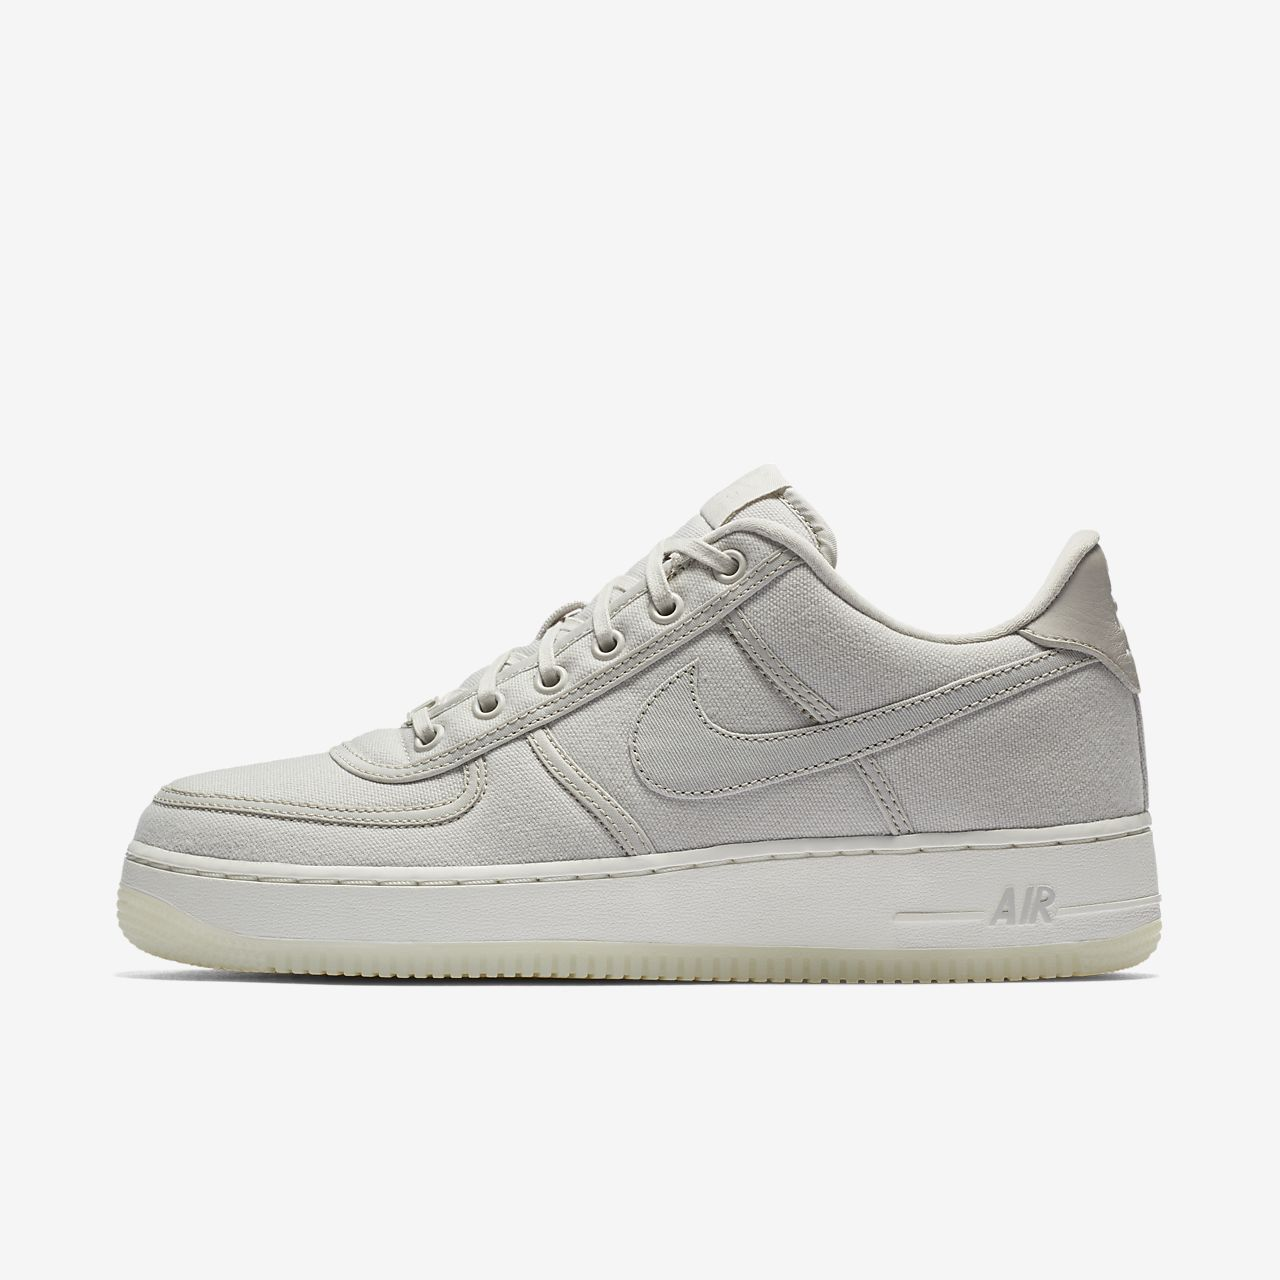 Air 1 Homme Low Nike Retro Qs Chaussure Force Pour kOZiPXu